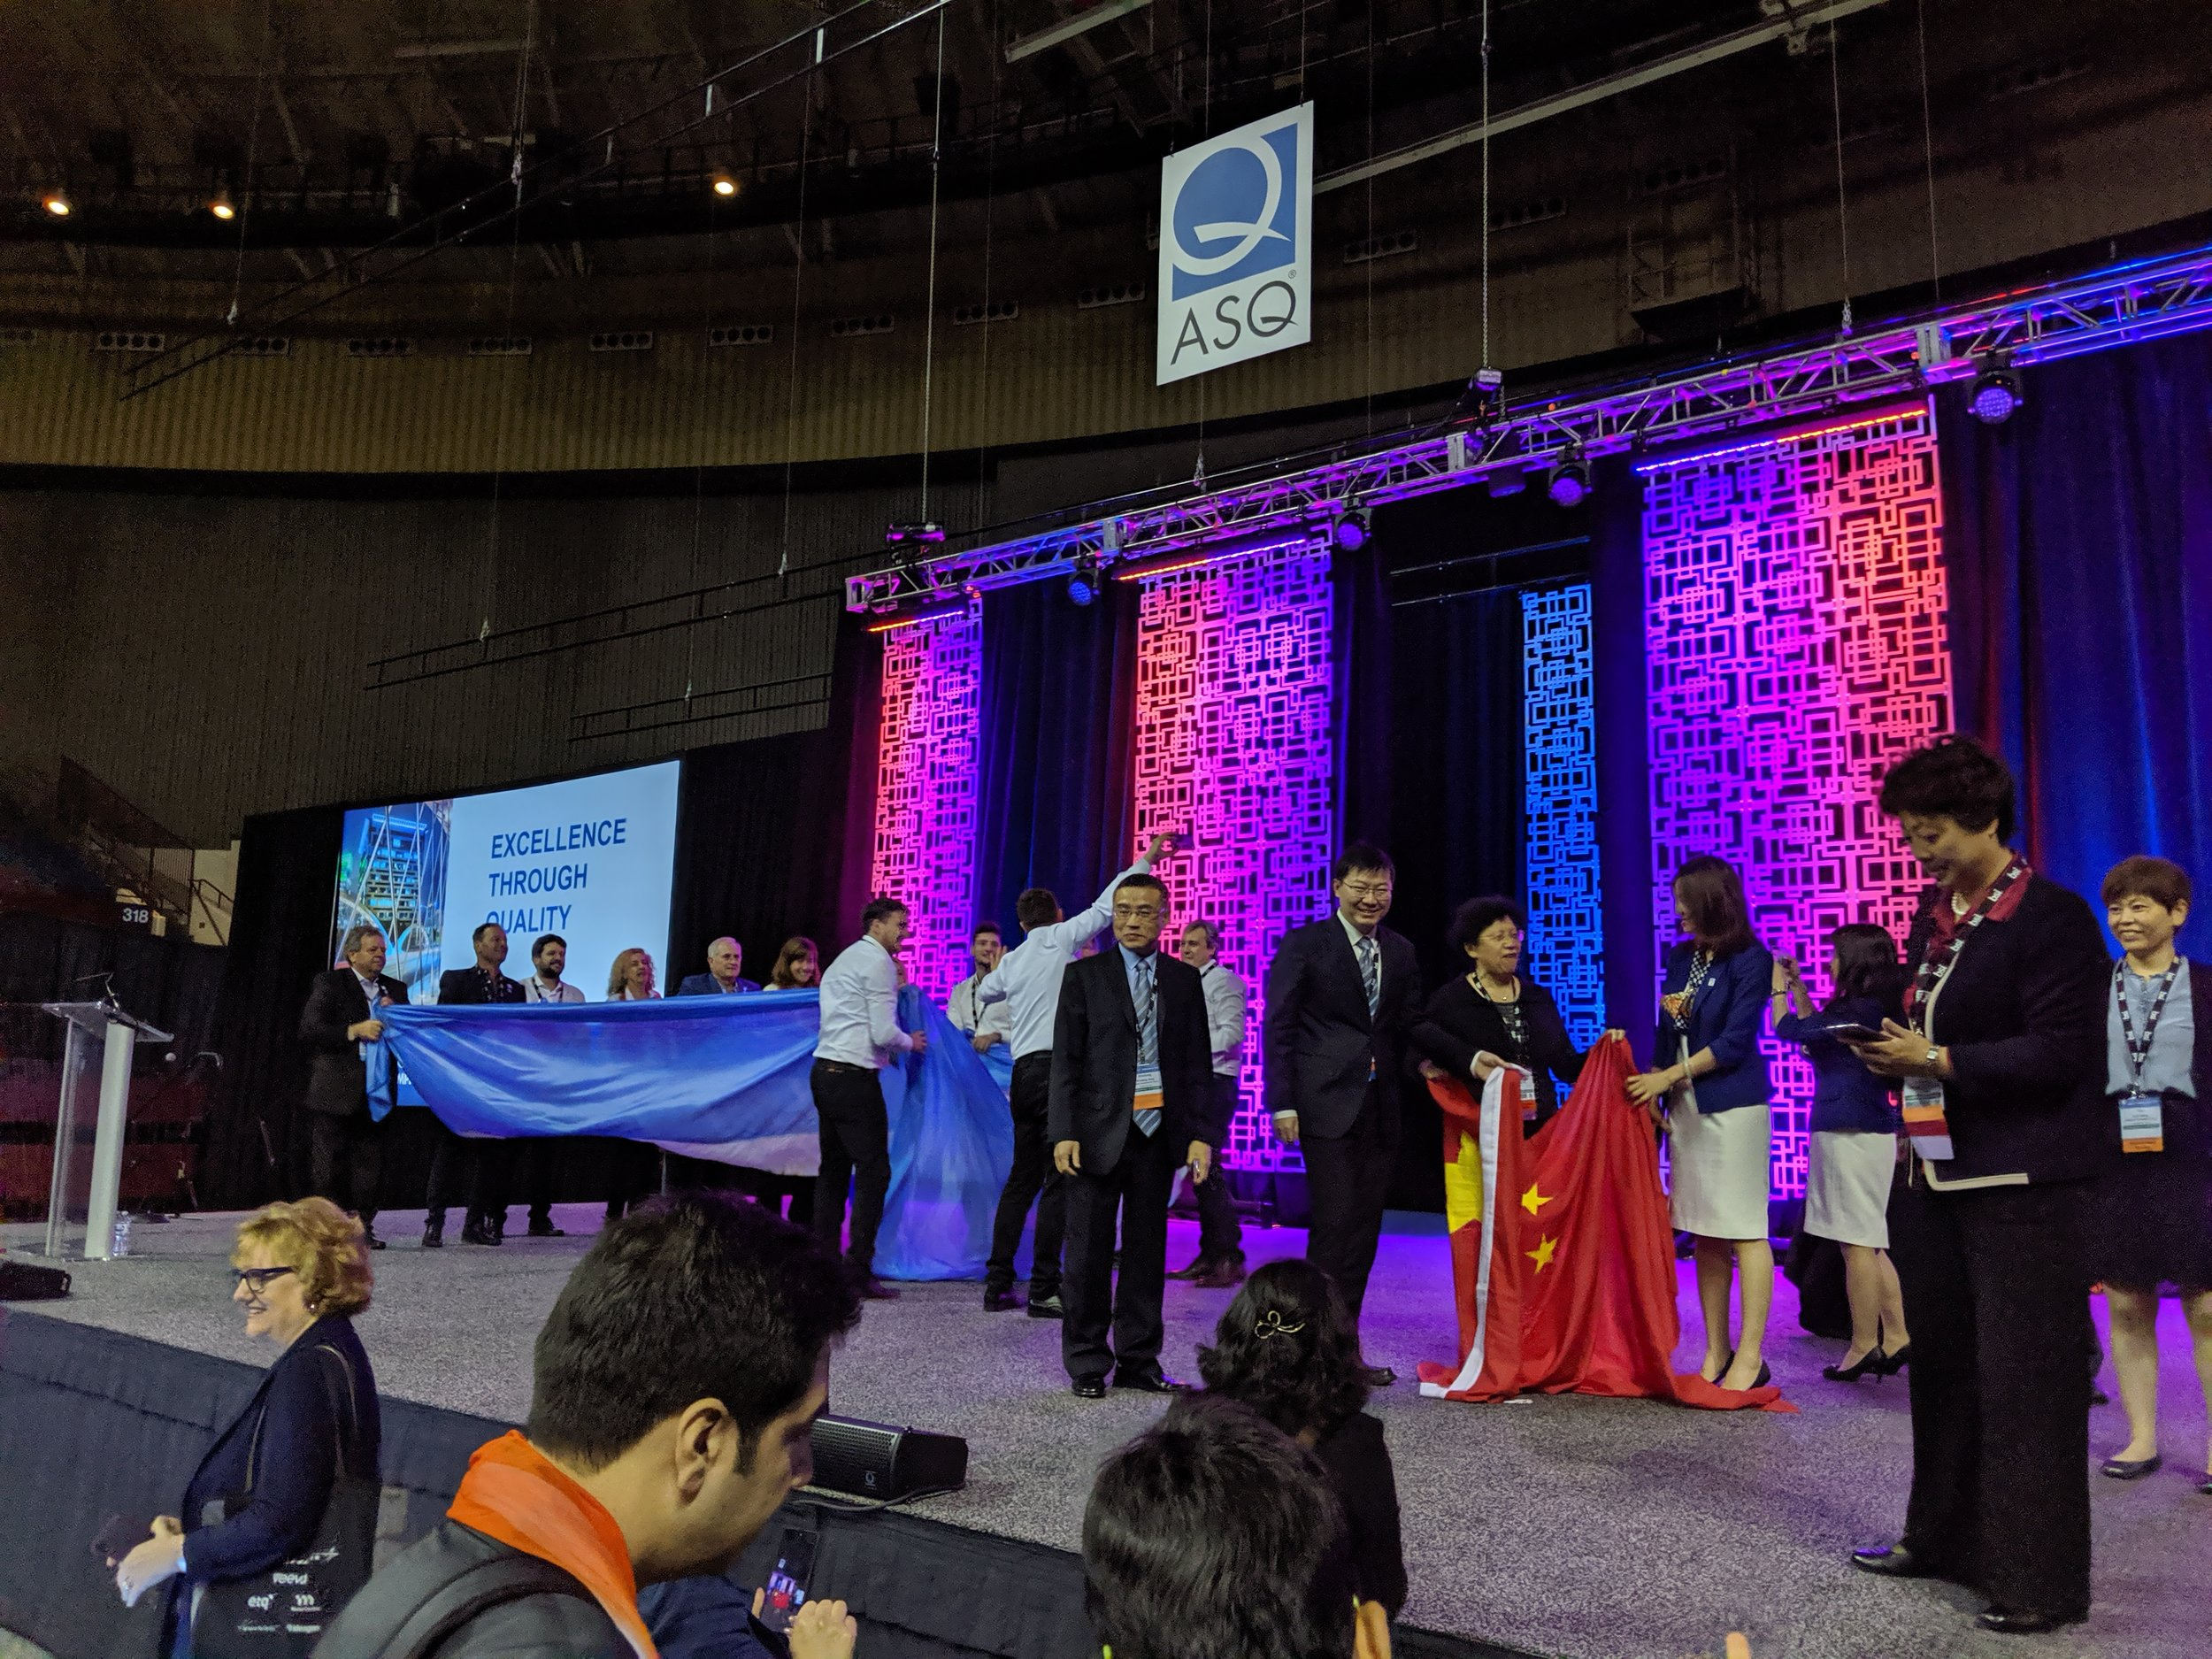 All the finalists and Bronze / Silver / Gold recipients were so enthusiastic and beaming with national pride. Here the Argentinian and Chinese teams post flag waving ceremony for their performance in continuous improvement case studies from their respective companies.